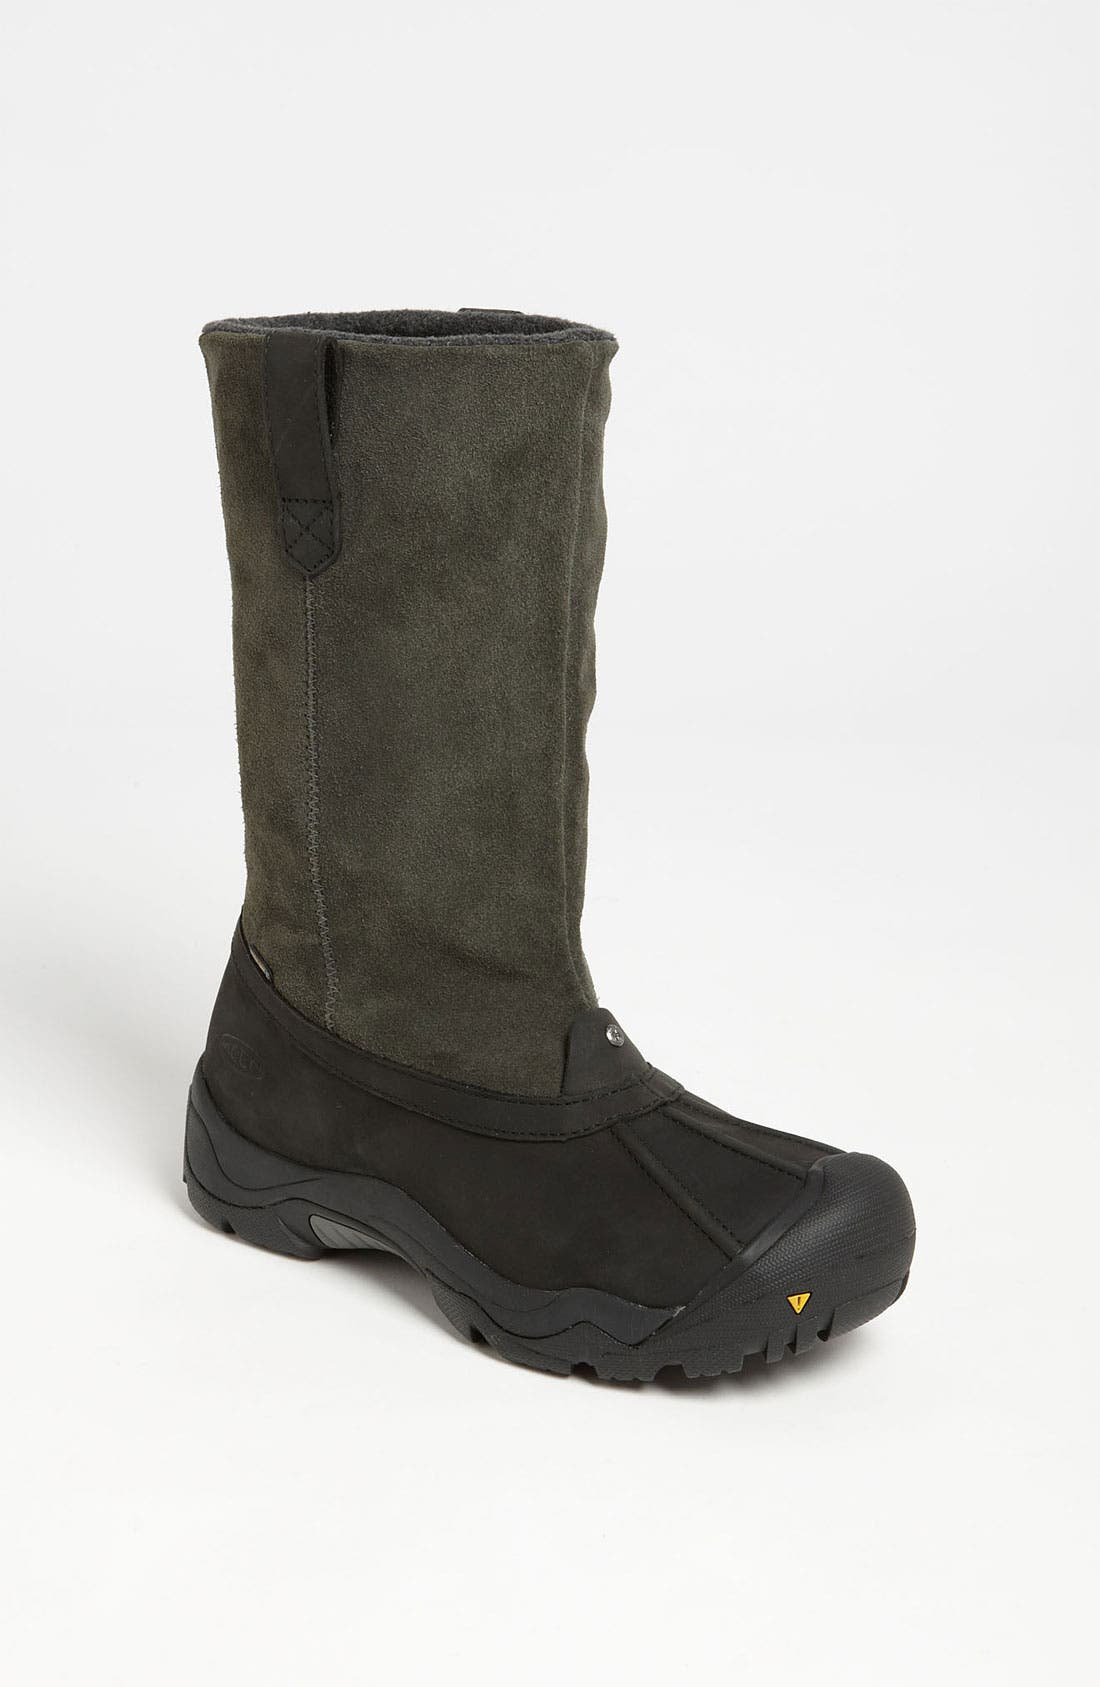 Main Image - Keen 'Incline' Snow Boot